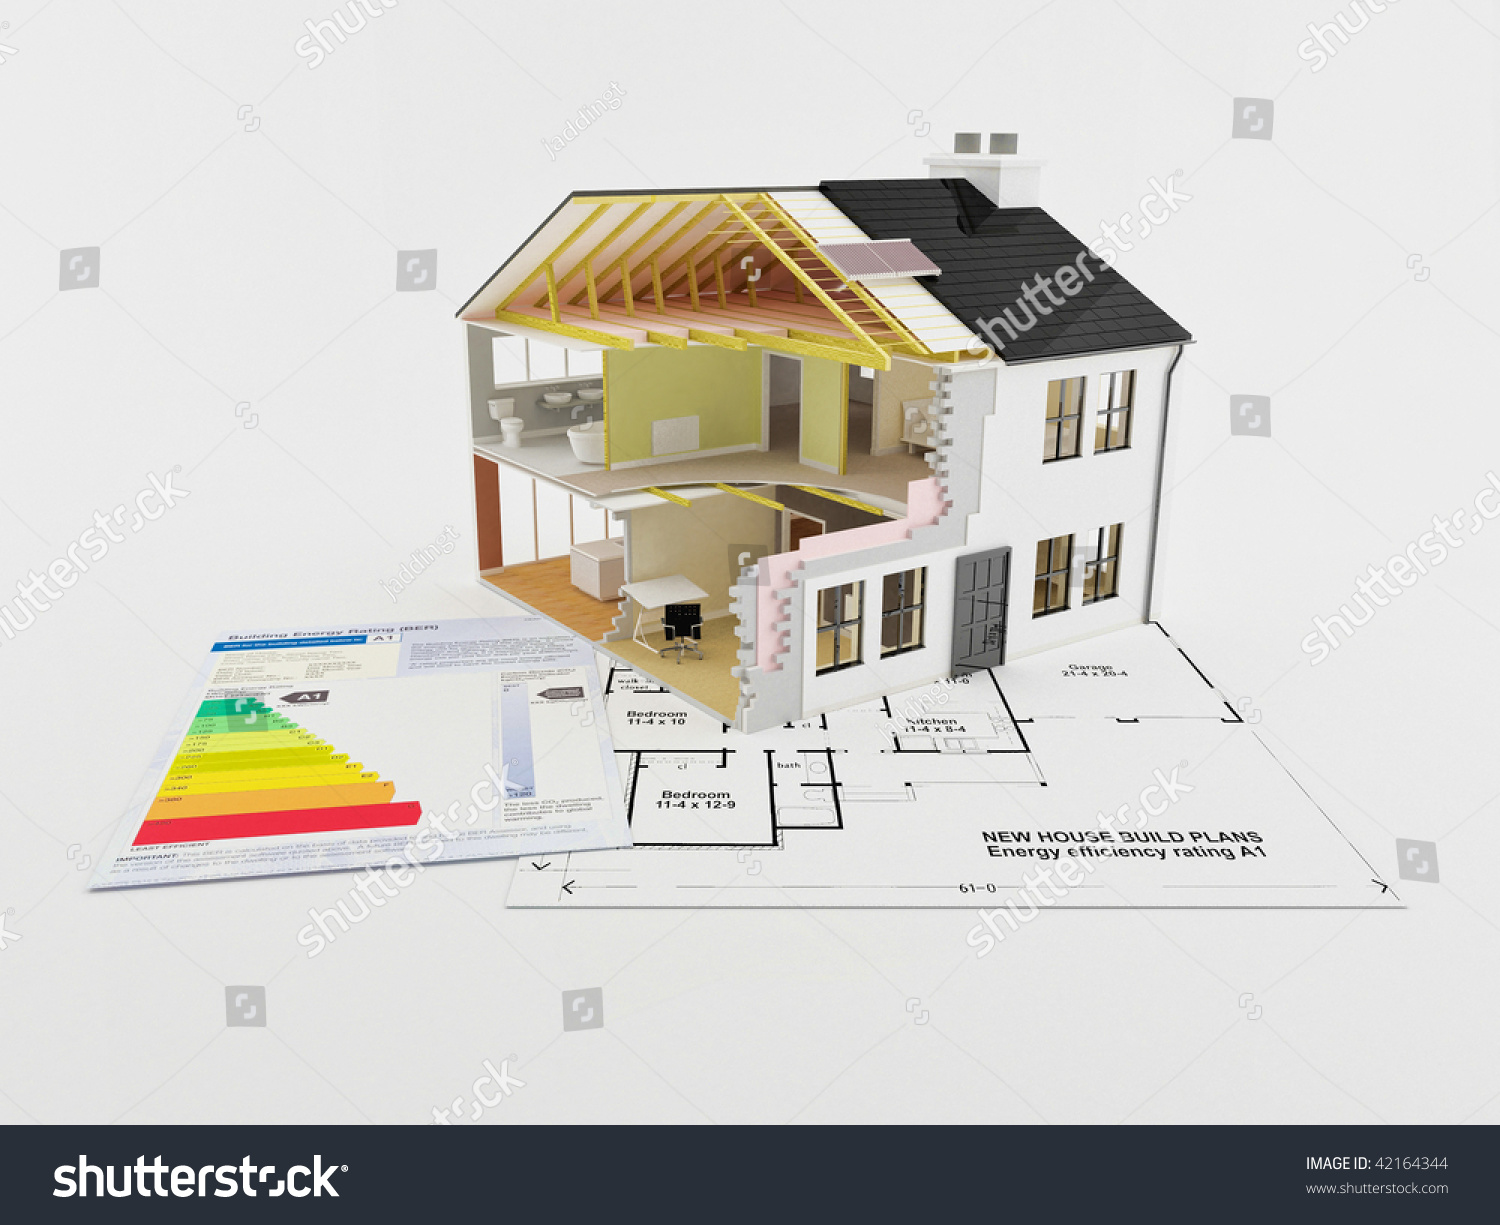 Image New Home Energy Saving Certificate Stock